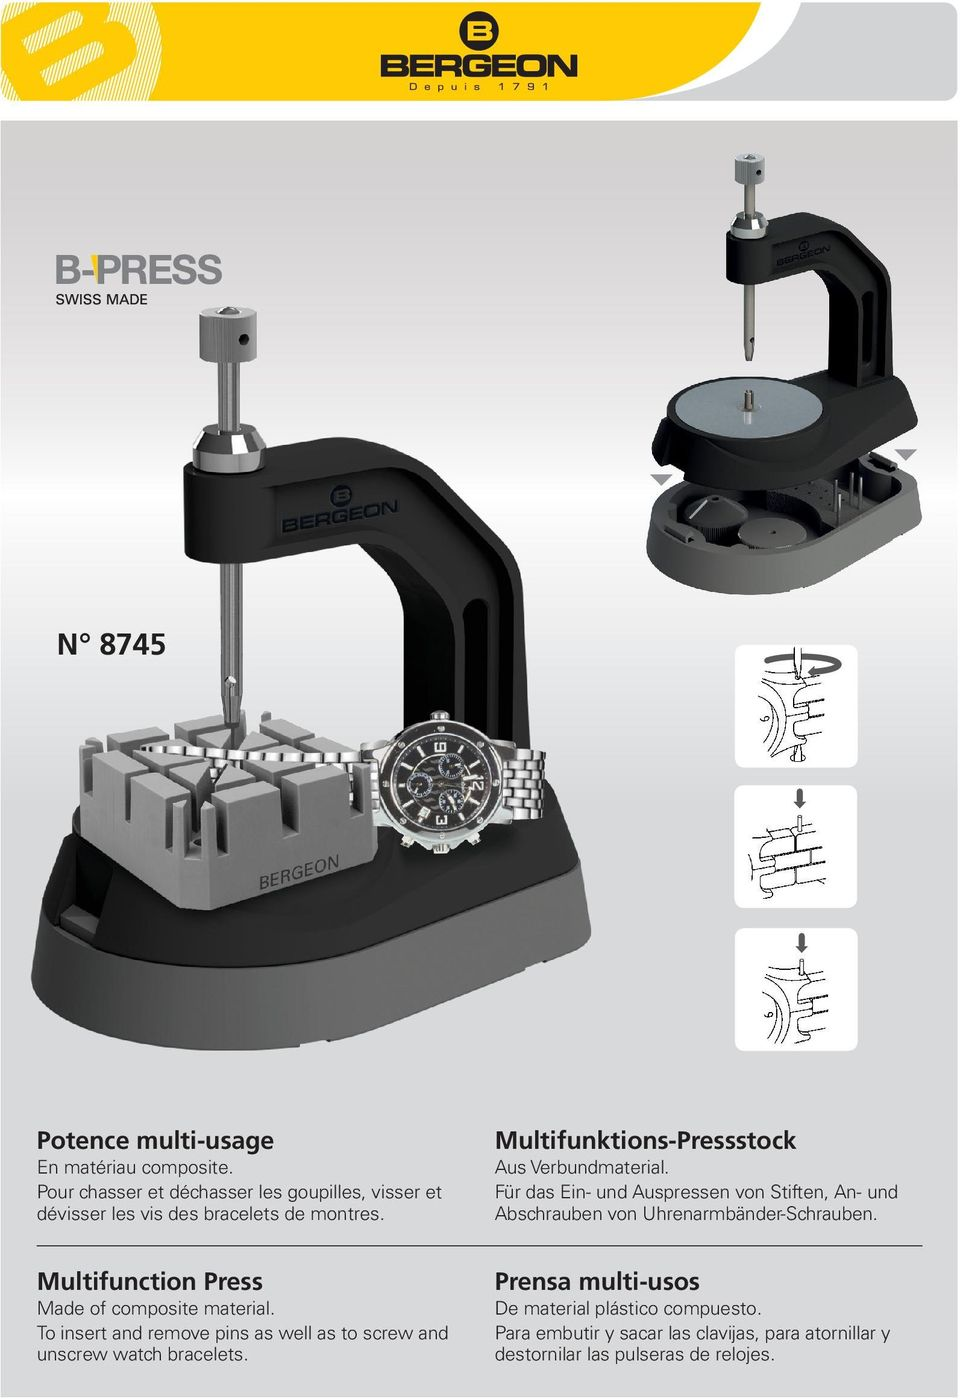 Multifunction Press Made of composite material. To insert and remove pins as well as to screw and unscrew watch bracelets.